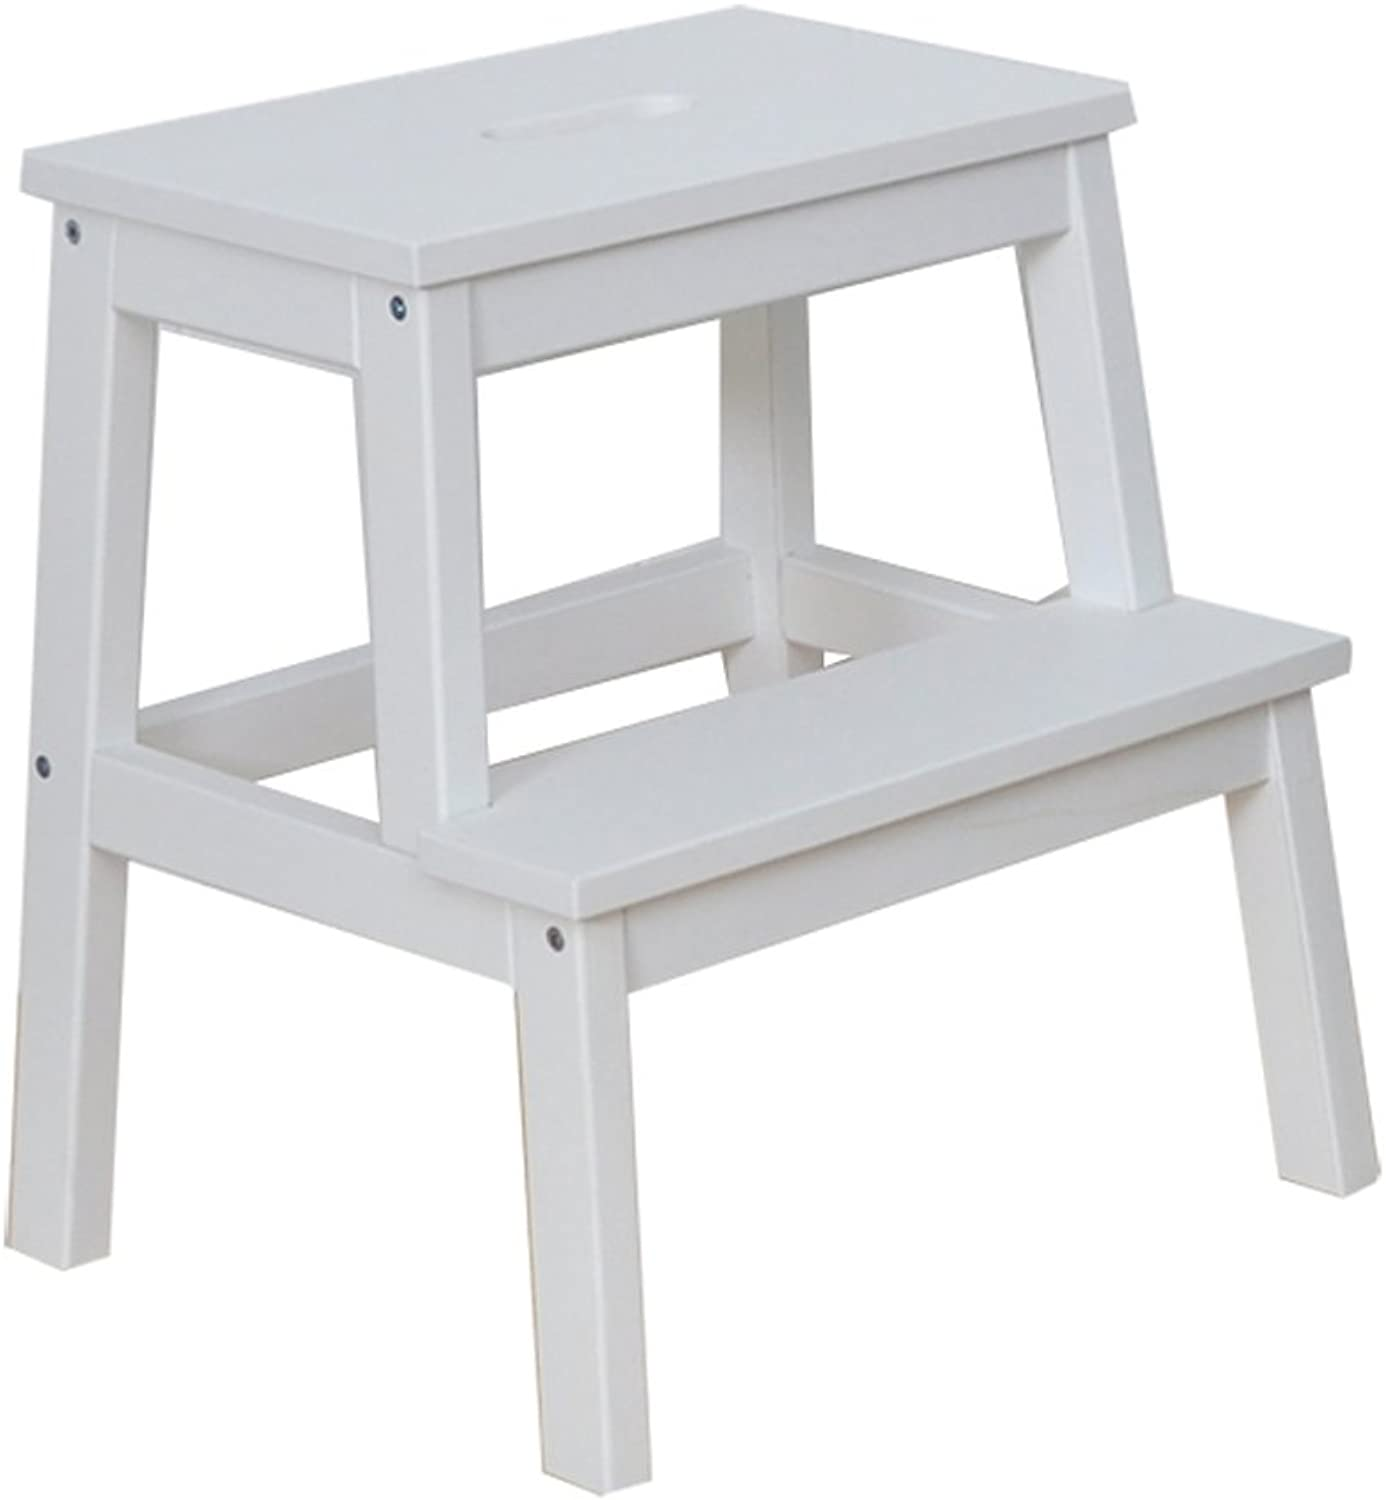 WFFXLL Ladder Step Stool Square Mazar Easy to Assemble Dual-use Solid Wood Home shoes Bench Stool, 2 colors Optional Step Stool (color   White)